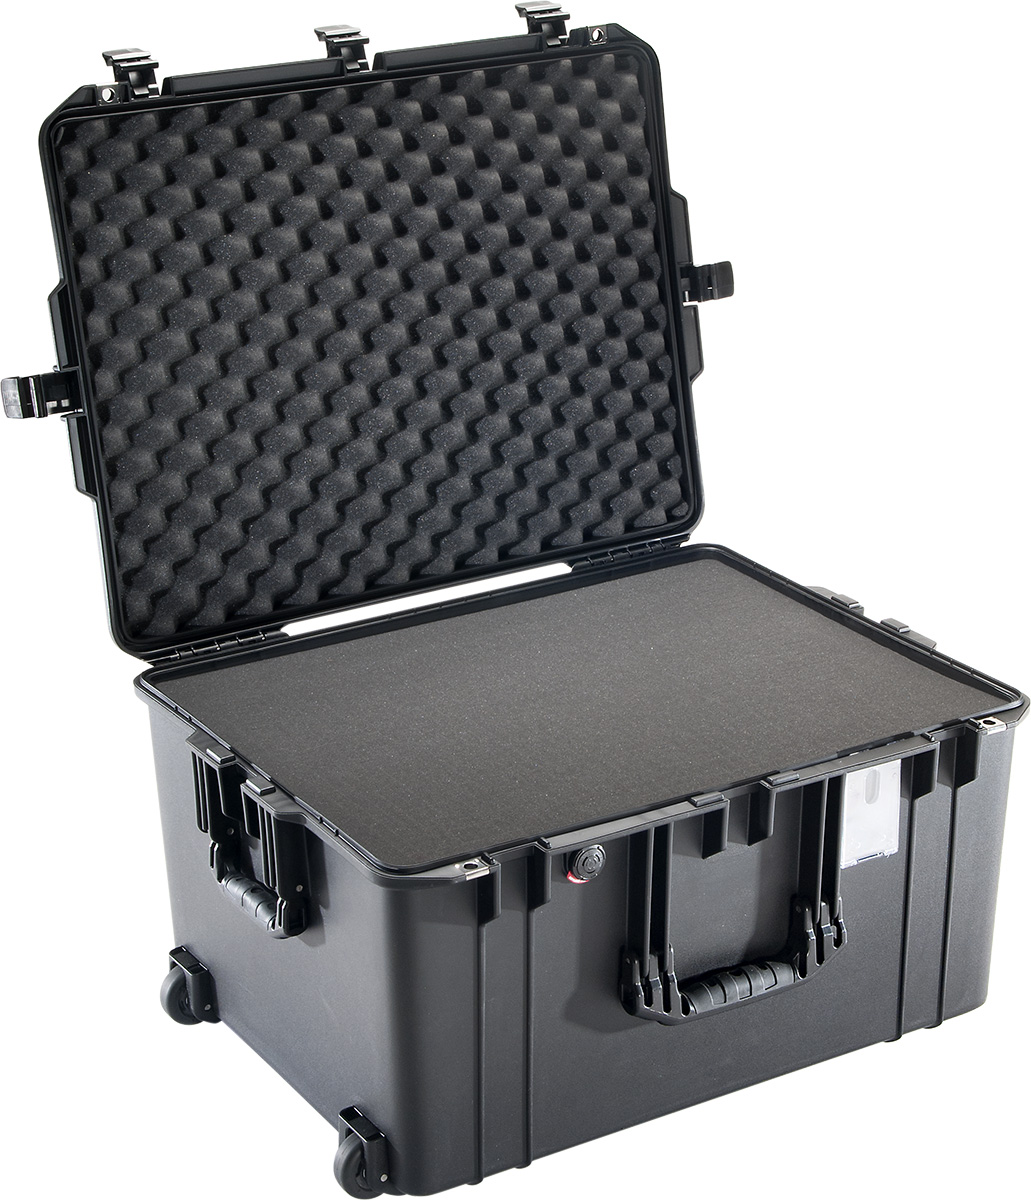 67.6 Kg To Lbs Amazing 1637 protector - large case | air case | pelican consumer